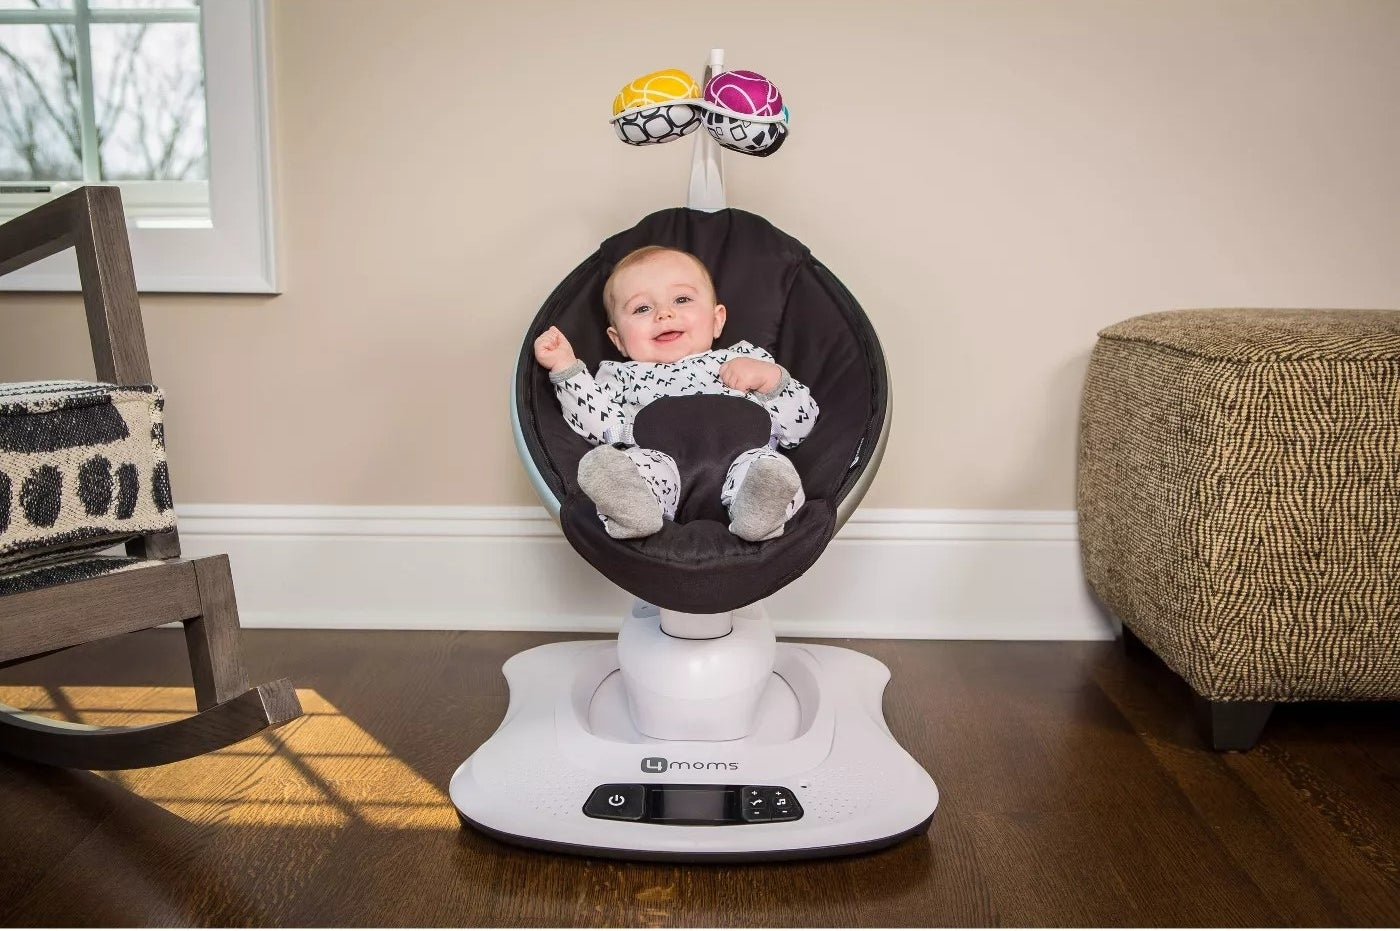 A baby smiling while sitting in the mamaRoo